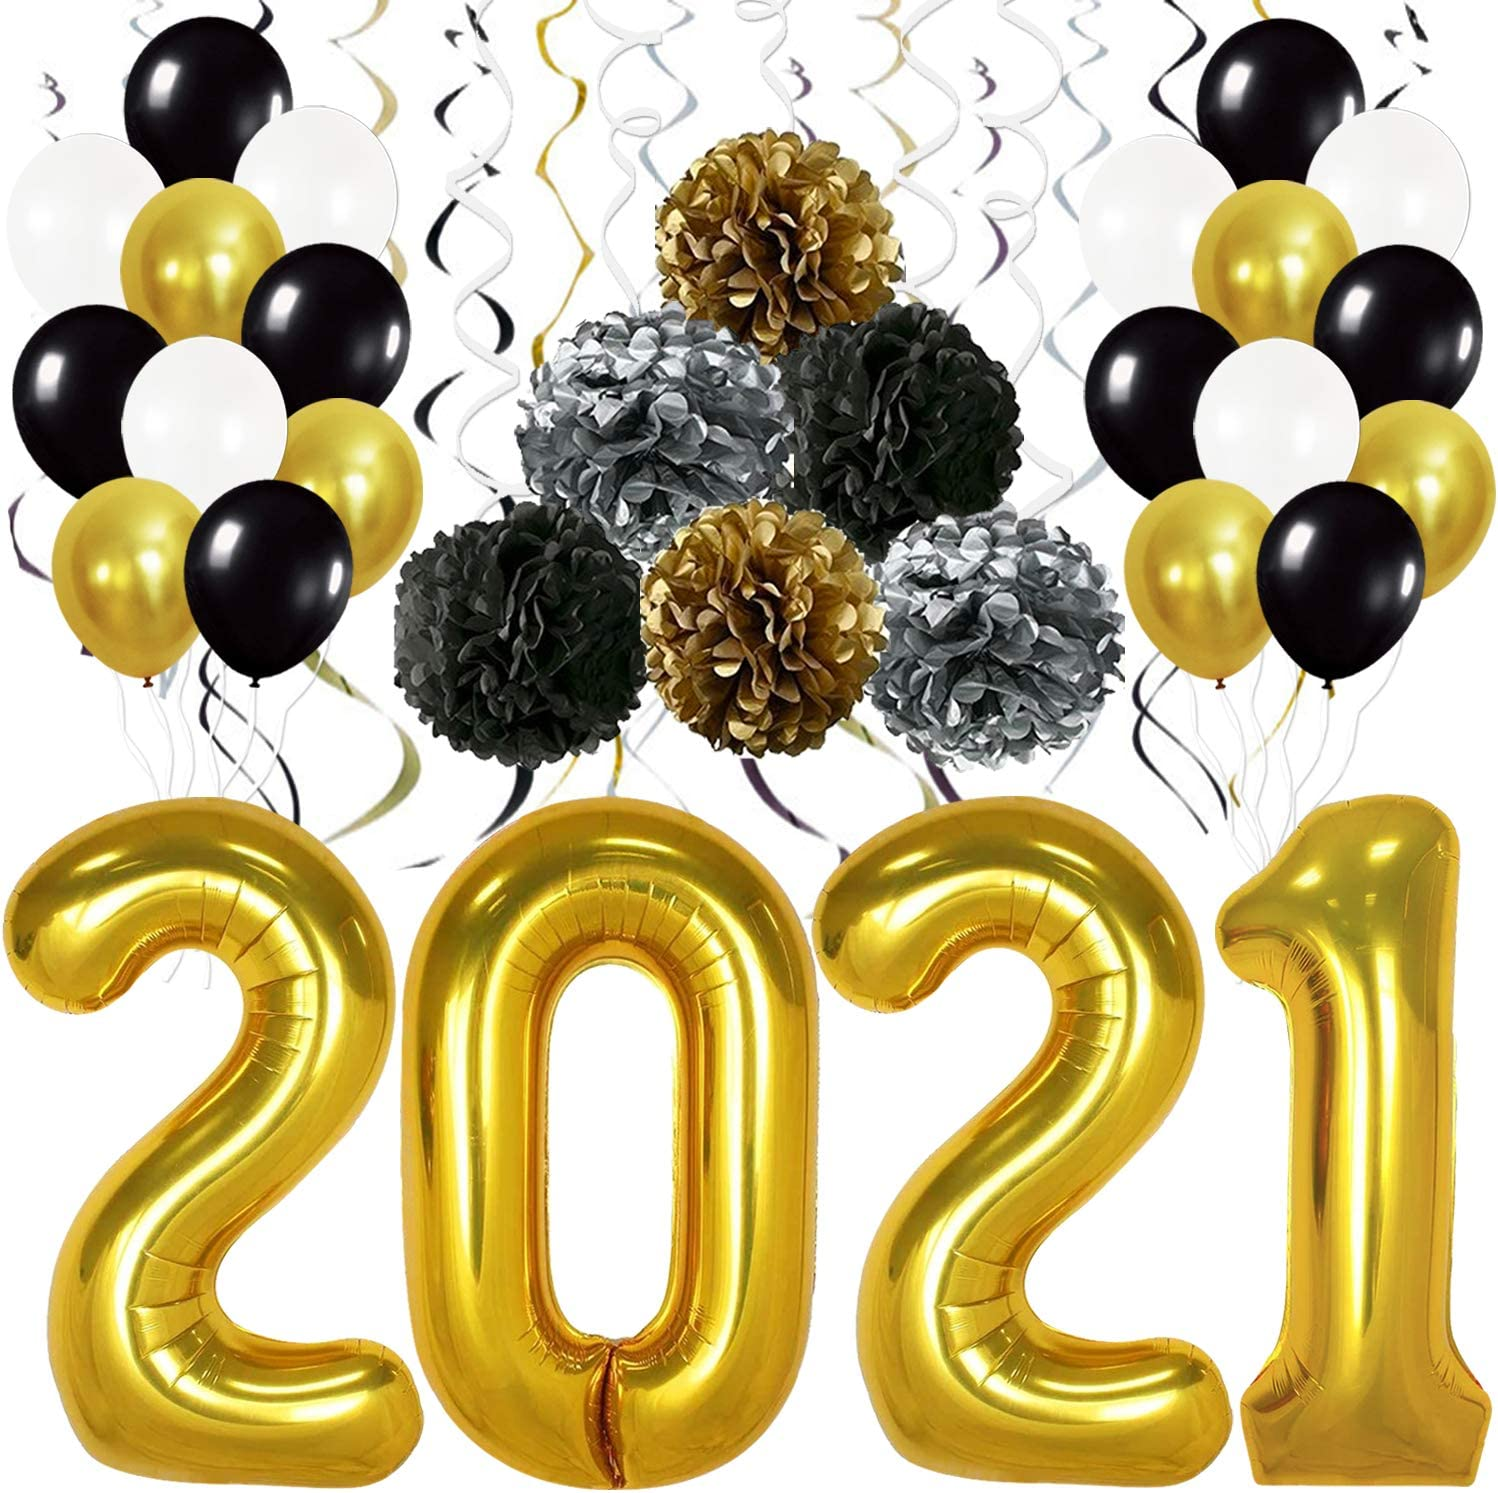 40 Inch Jelly New Years Balloons for NYE Decorations NYE 2021 Decorations Happy New Year D/écor and Graduation Party Supplies Large Colorful Rainbow 2021 Balloons for New Years Eve Decorations